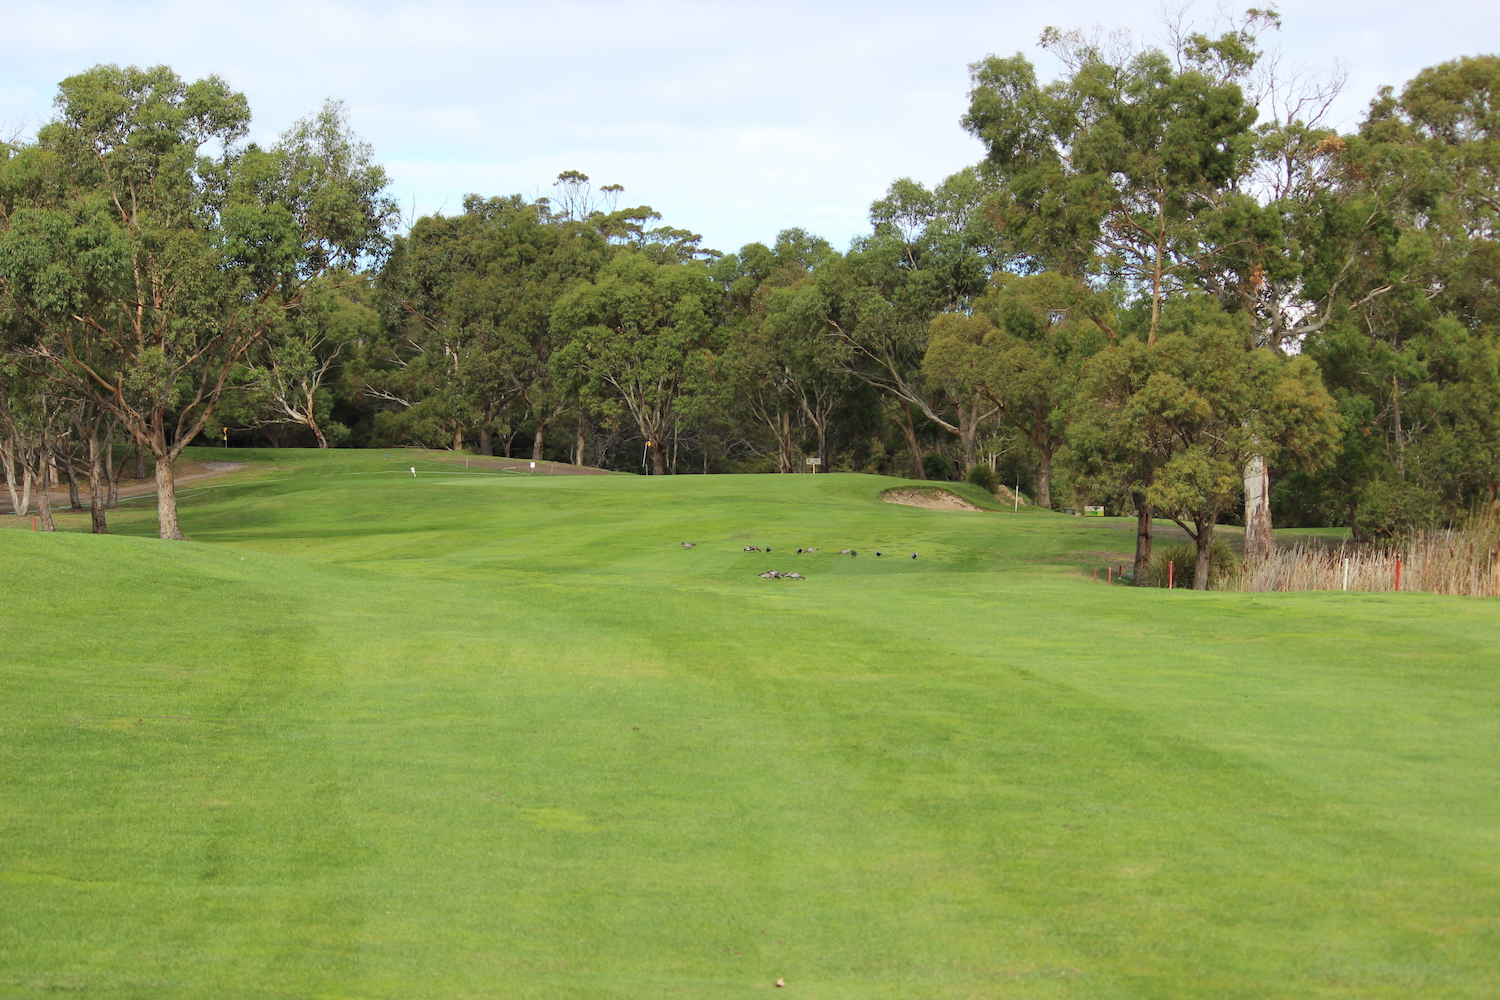 Hole 8    A straight hole with a narrow entry between two large dams at the 100 metre mark hitting up to a large elevated but sloping green.    Men: 436 metres, Par 5, Stroke Index 7/25   Ladies: 371 metres, Par 5, Stroke Index 5/23